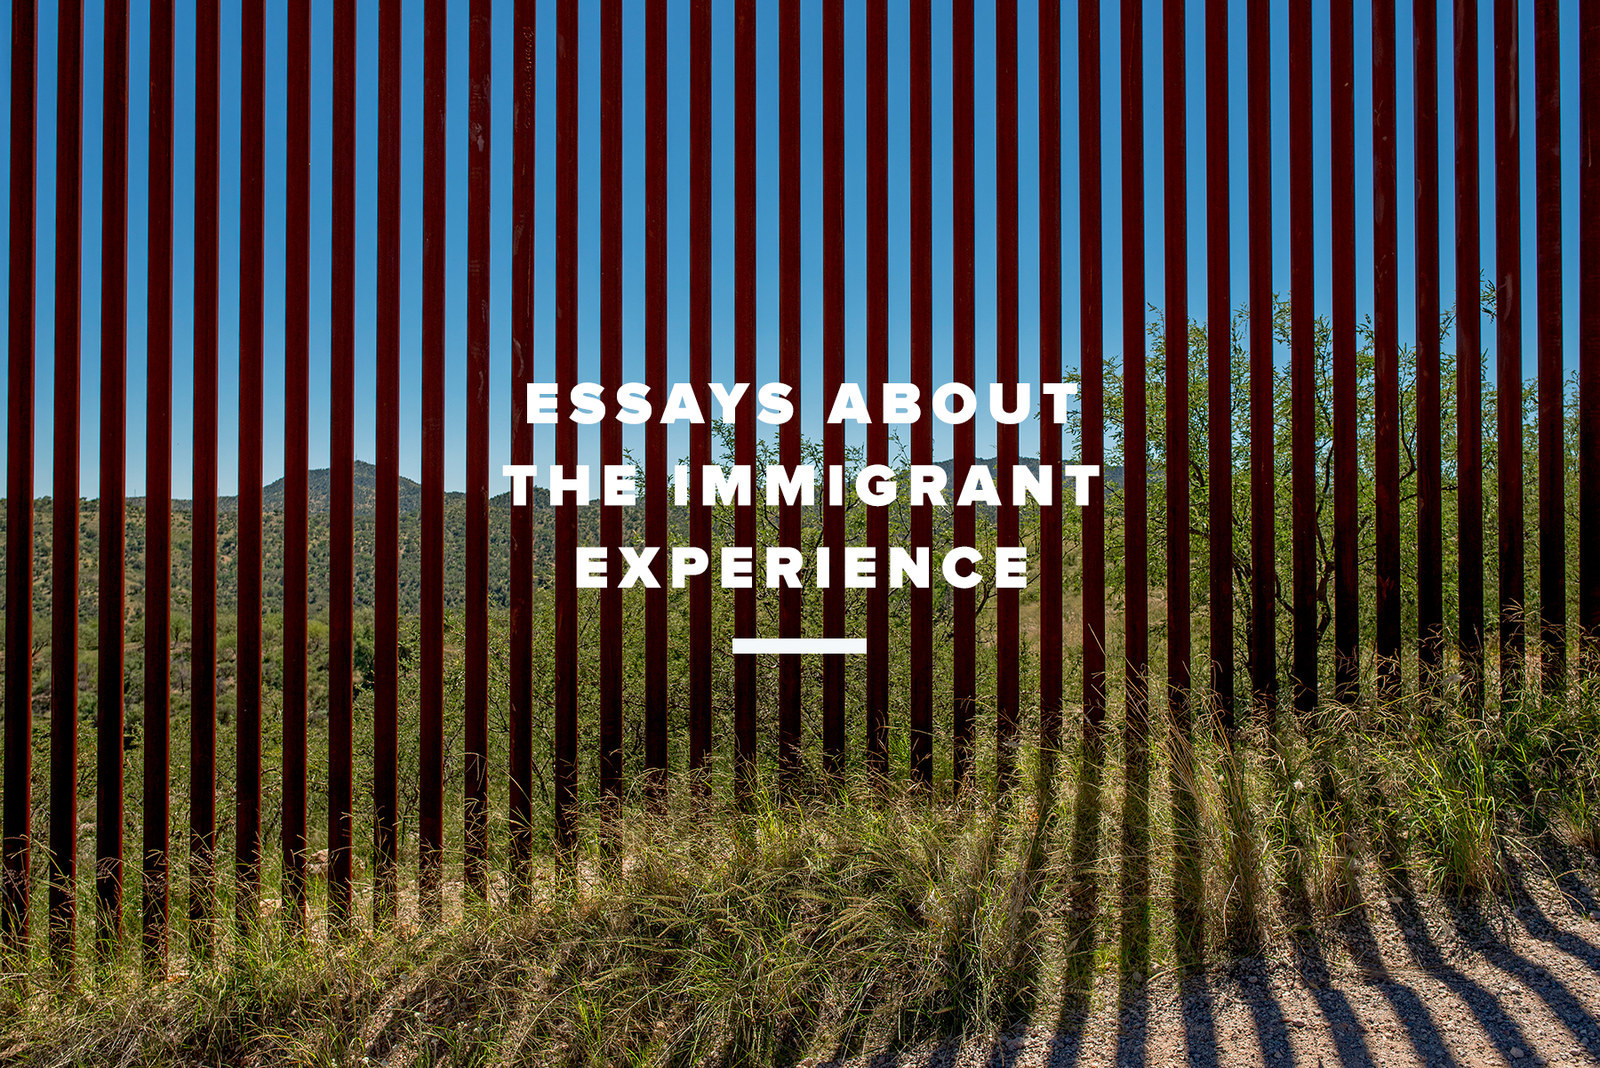 essays about the immigrant experience you need to tomas munit the new york times redux